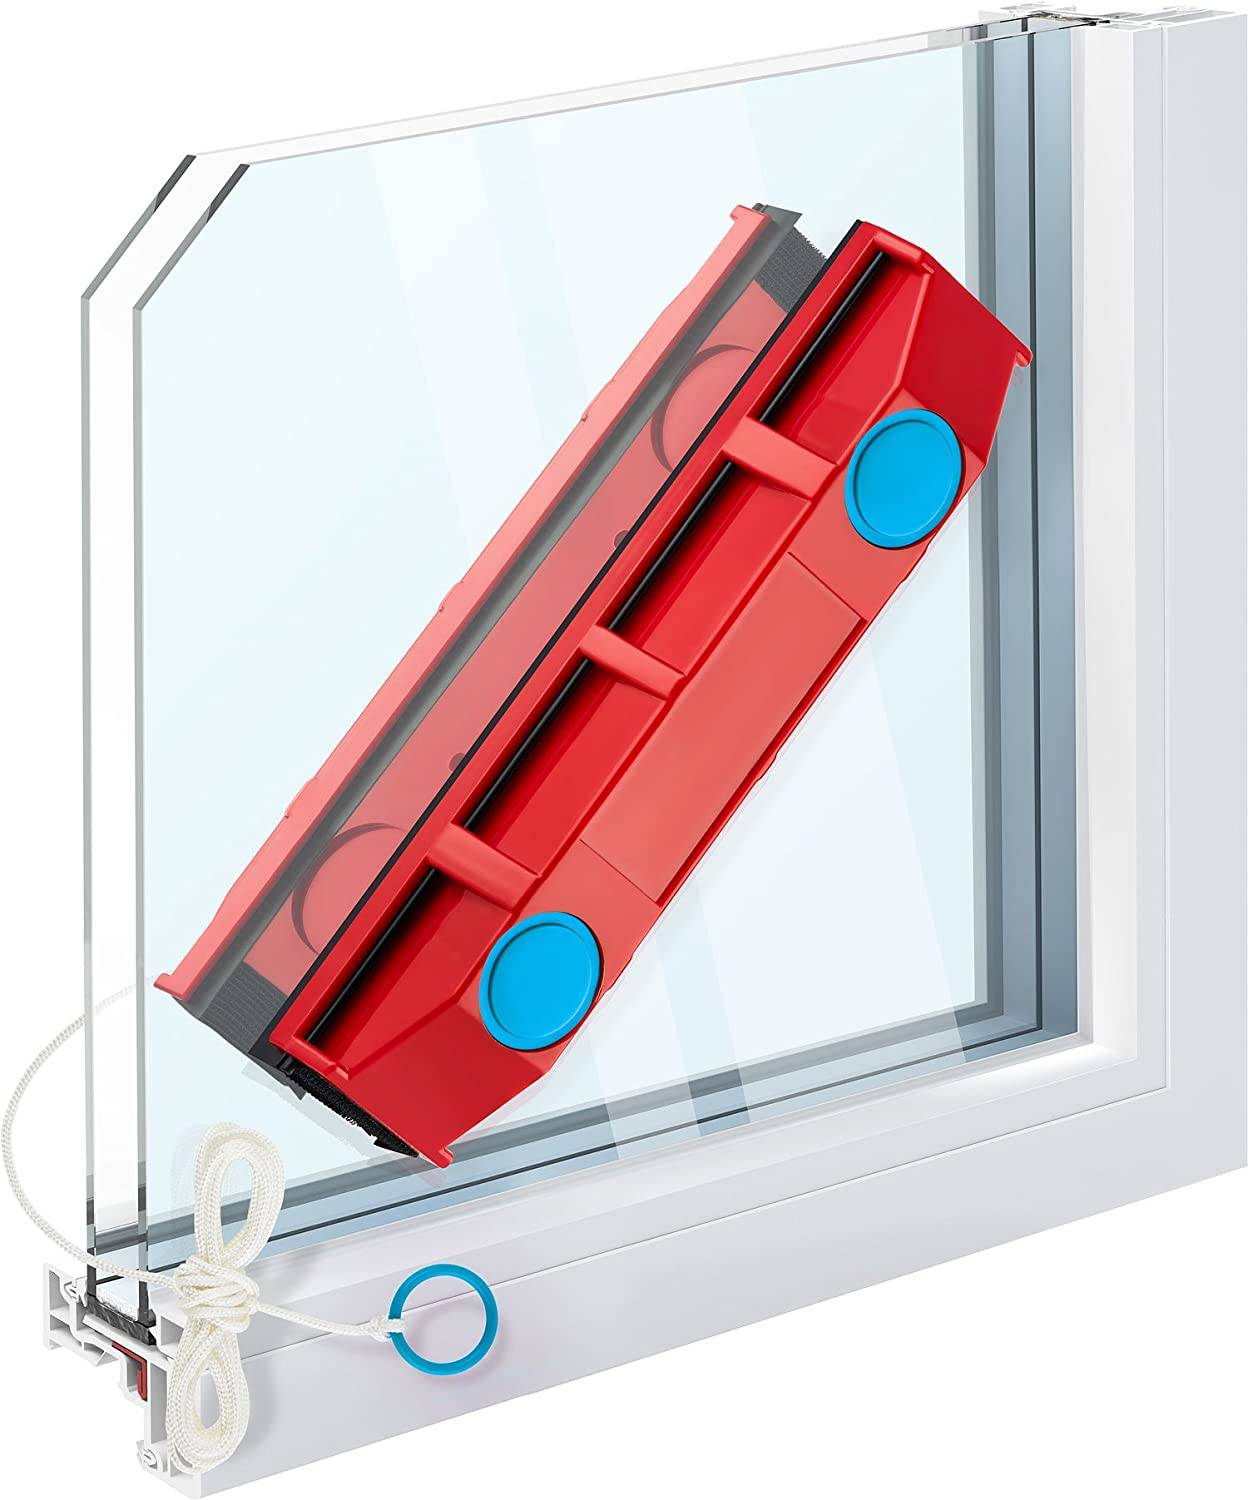 Magnetische Raamwisser Dubbel Glas.Tyroler Bright Tools The Glider D 2 Magnetic Window Cleaner For Double Glazed Windows Fit To 0 3 0 7 Window Thickness